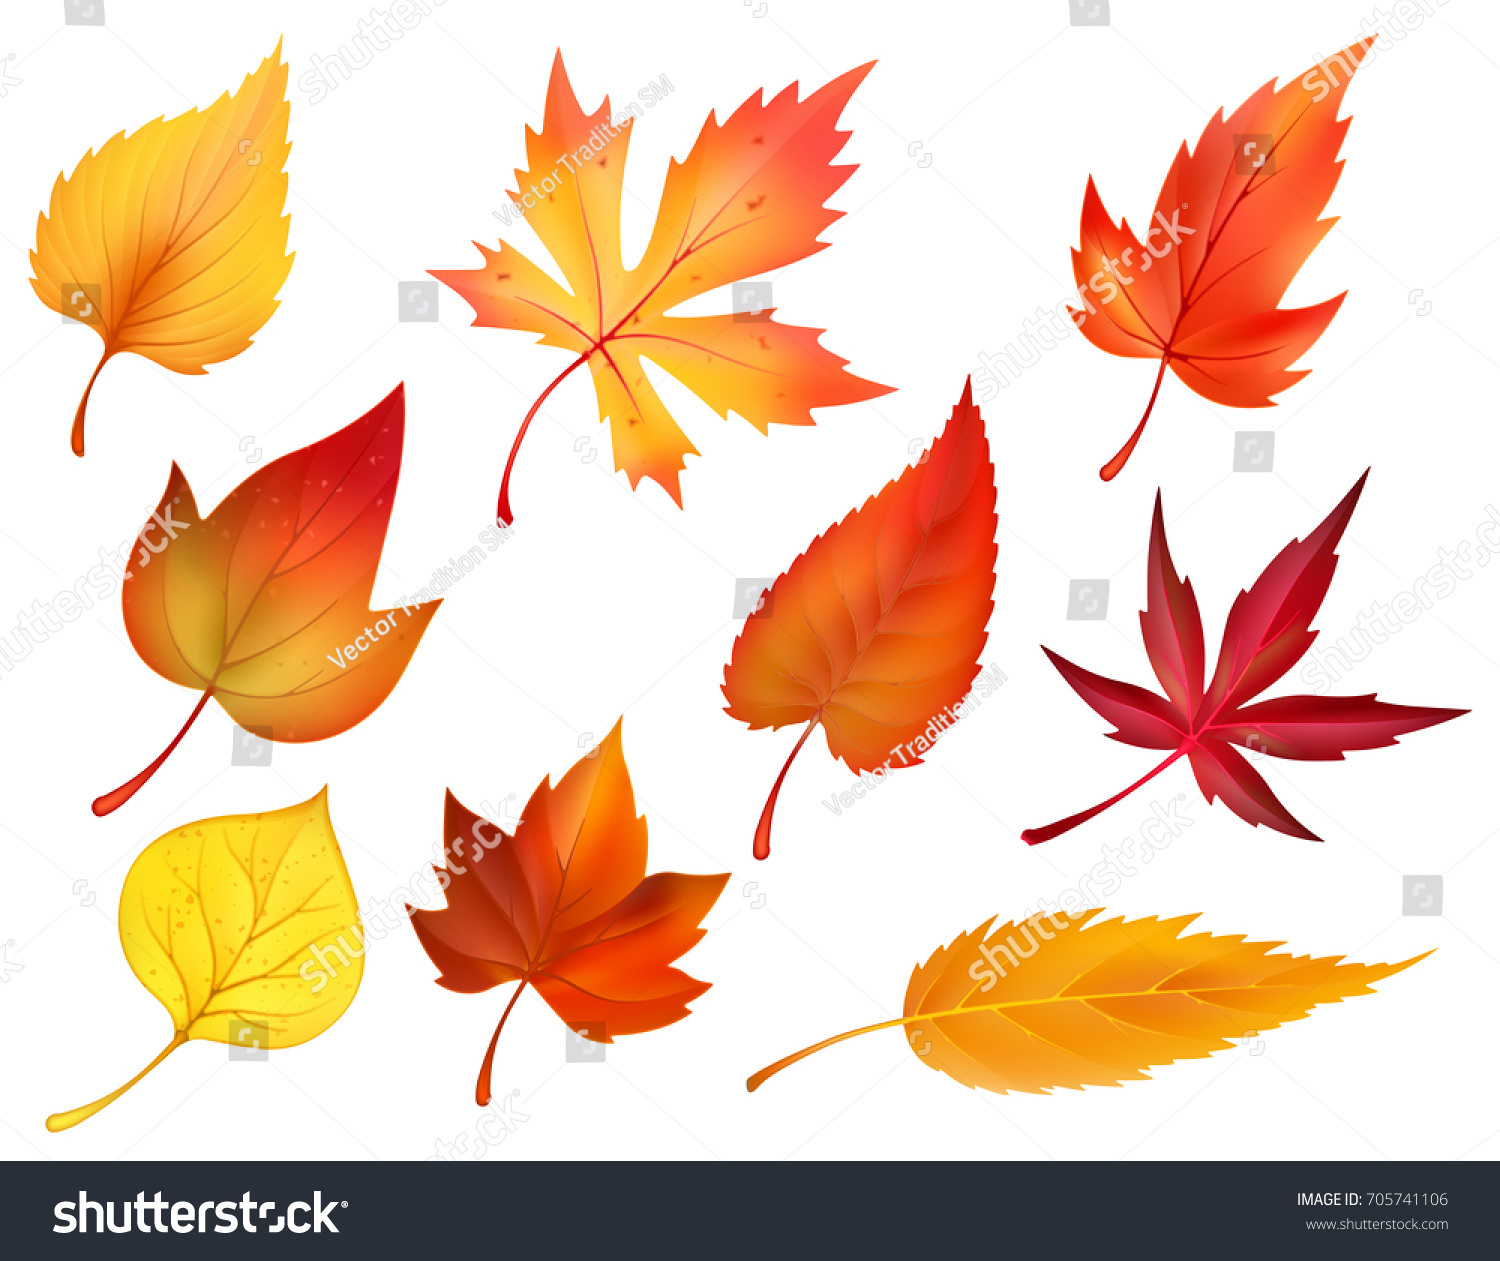 Autumn Leaves Or Fall Foliage Icons. Vector Isolated Set Of Maple, Oak Or  Birch